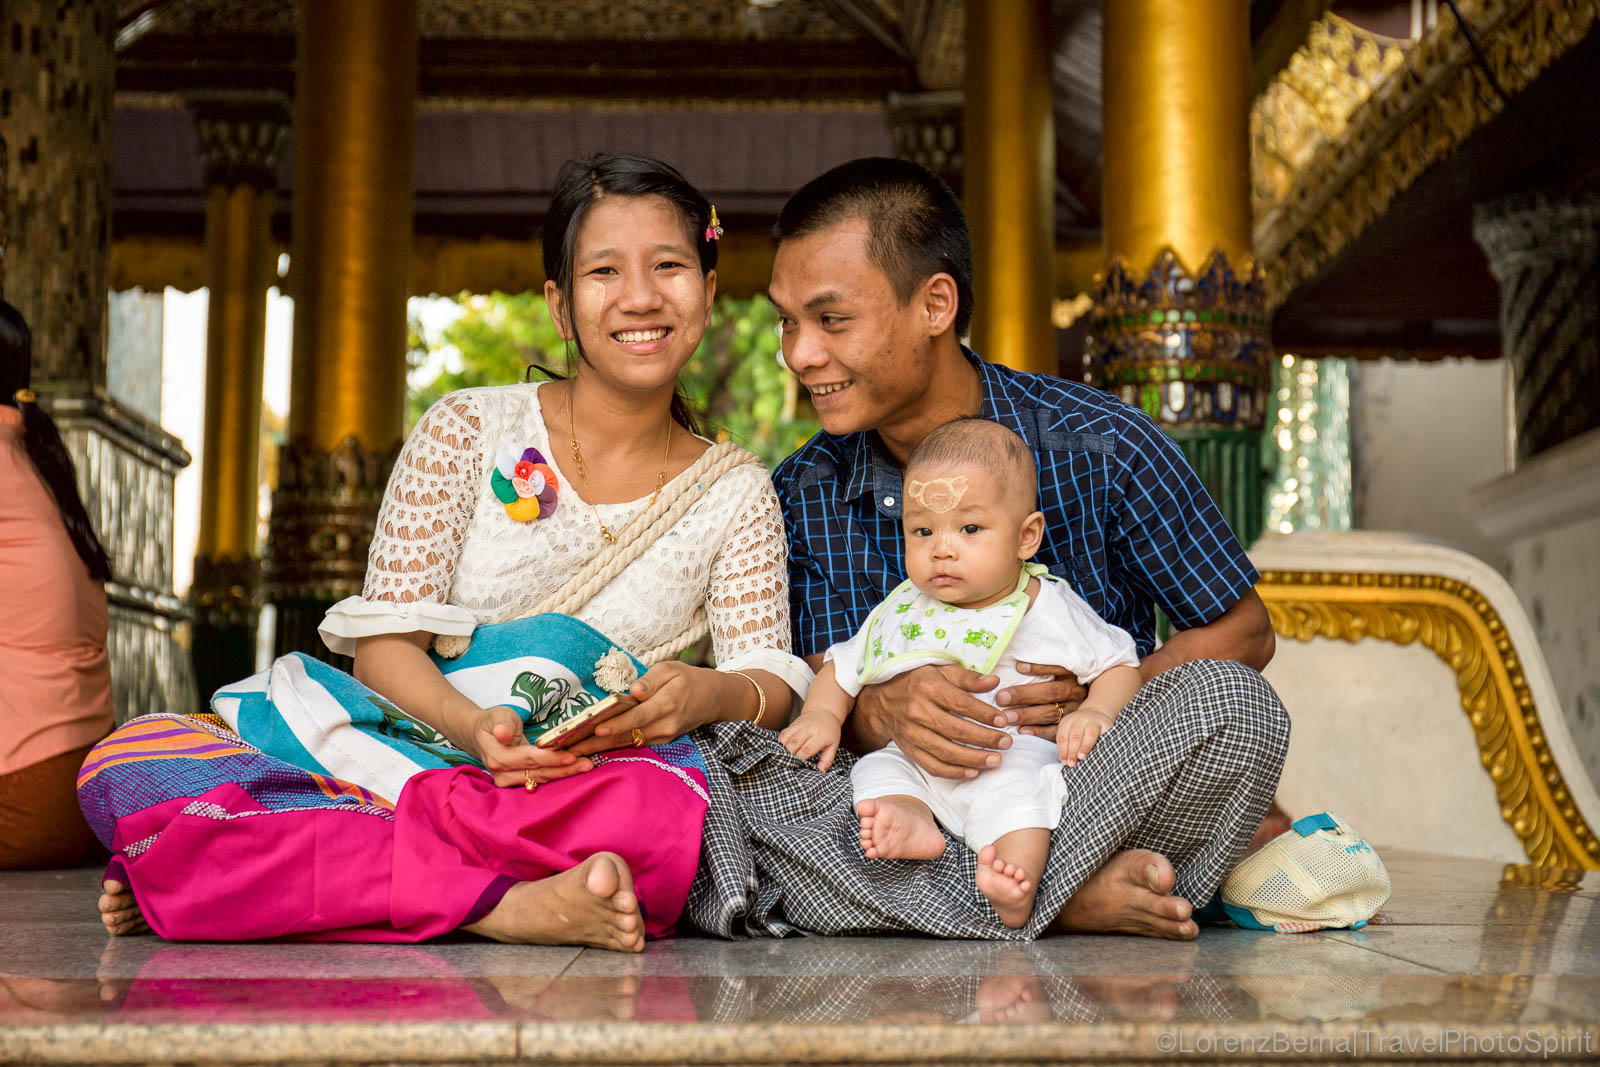 A young burmese couple brought their baby with them to the Shwedagon Paya in Yangon, Myanmar